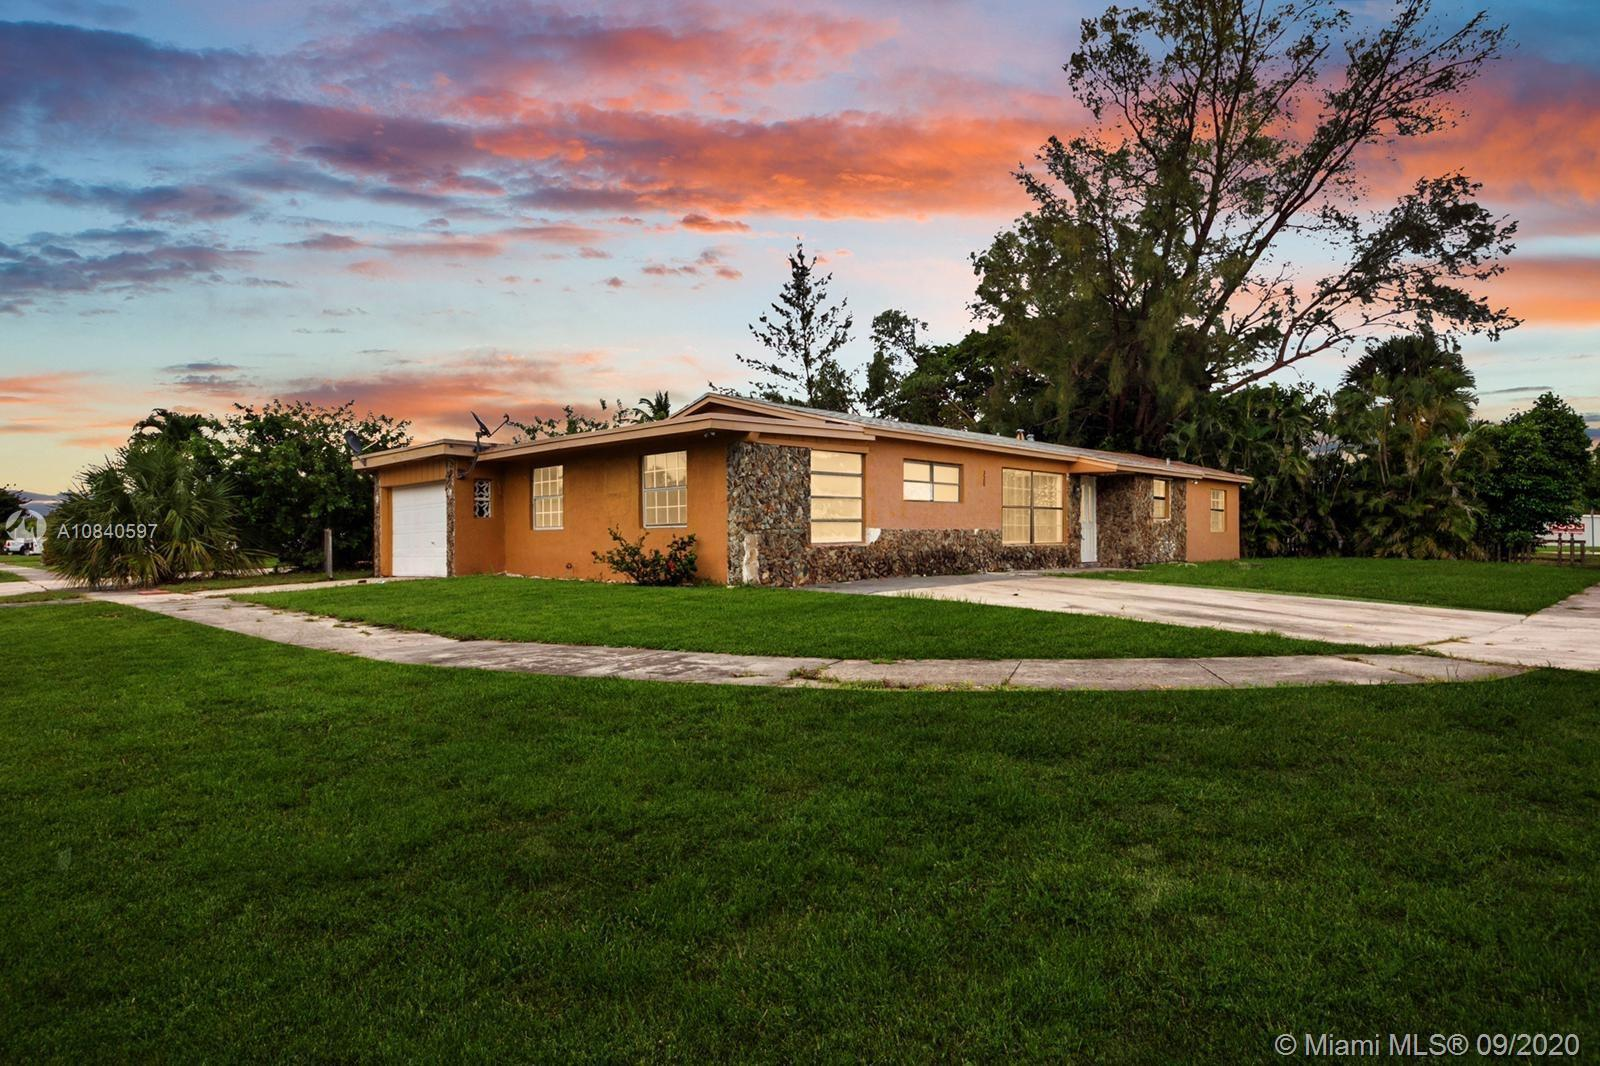 Large remodeled house, 5 bedroom 2 bath (Per tax record is has 3 beds). Central A/C with new airduct